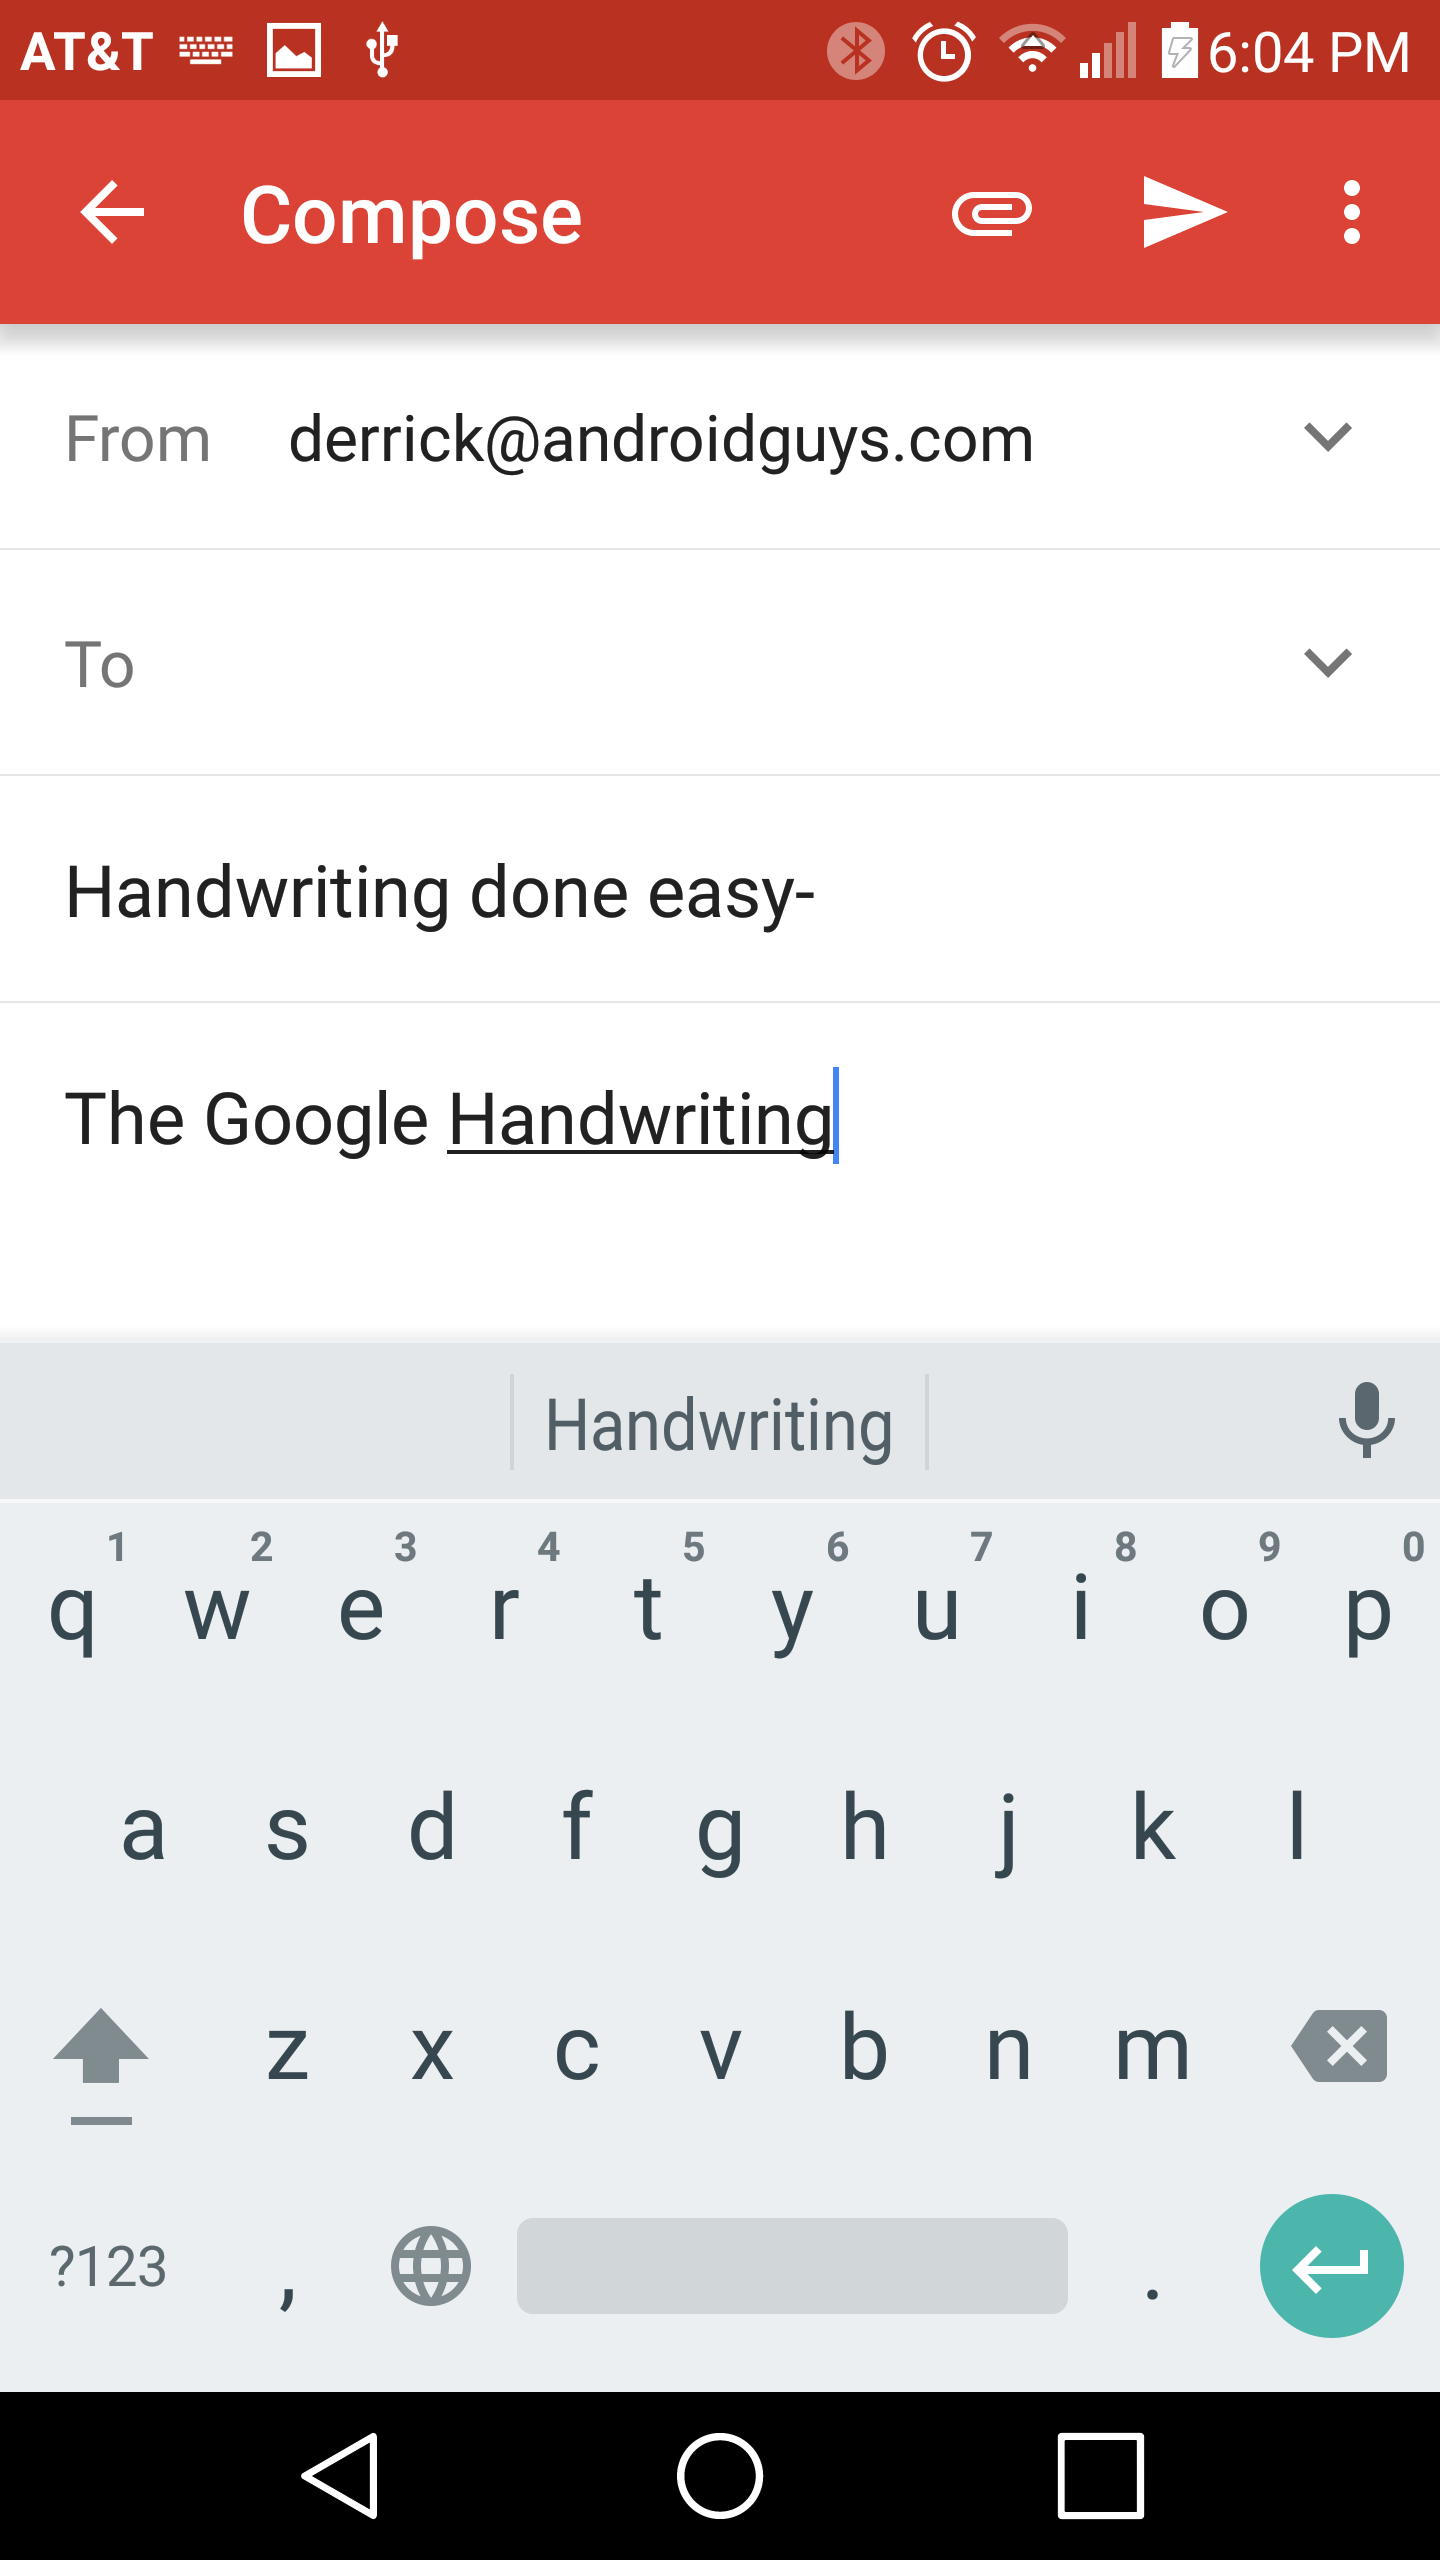 How to use Google Handwriting Input as an alternative to typing on a